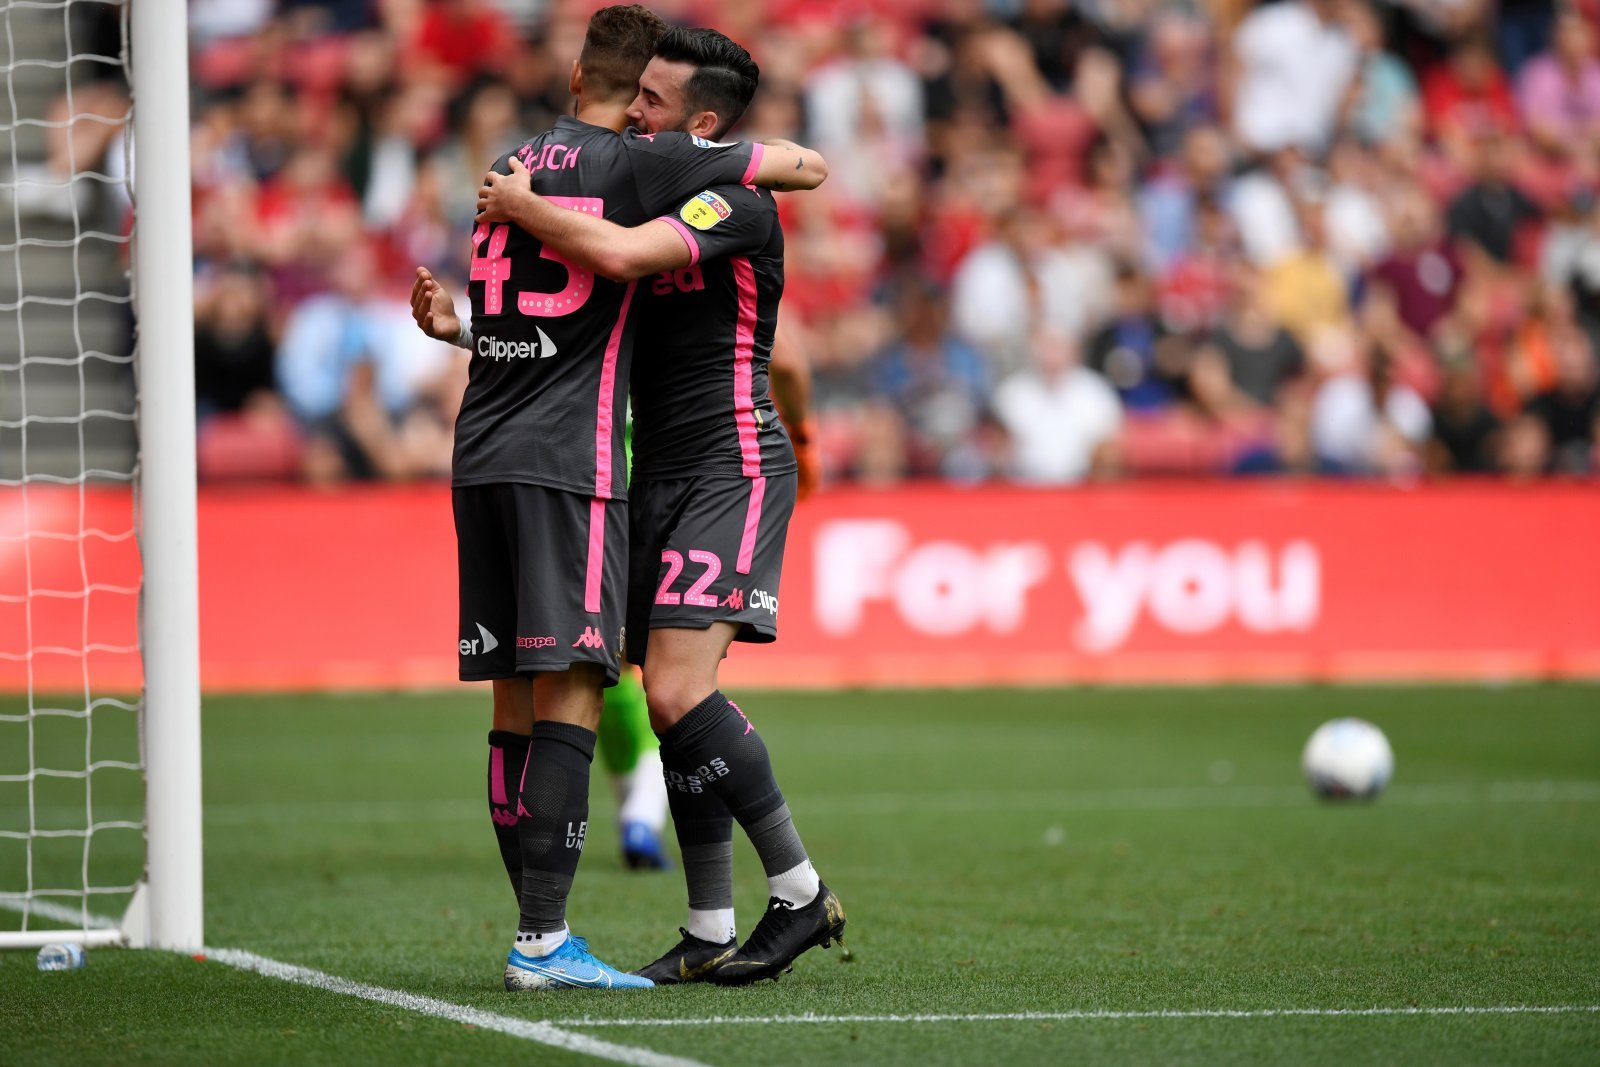 Unsung Hero: Jack Harrison is starting to show glimpses of quality for Leeds United